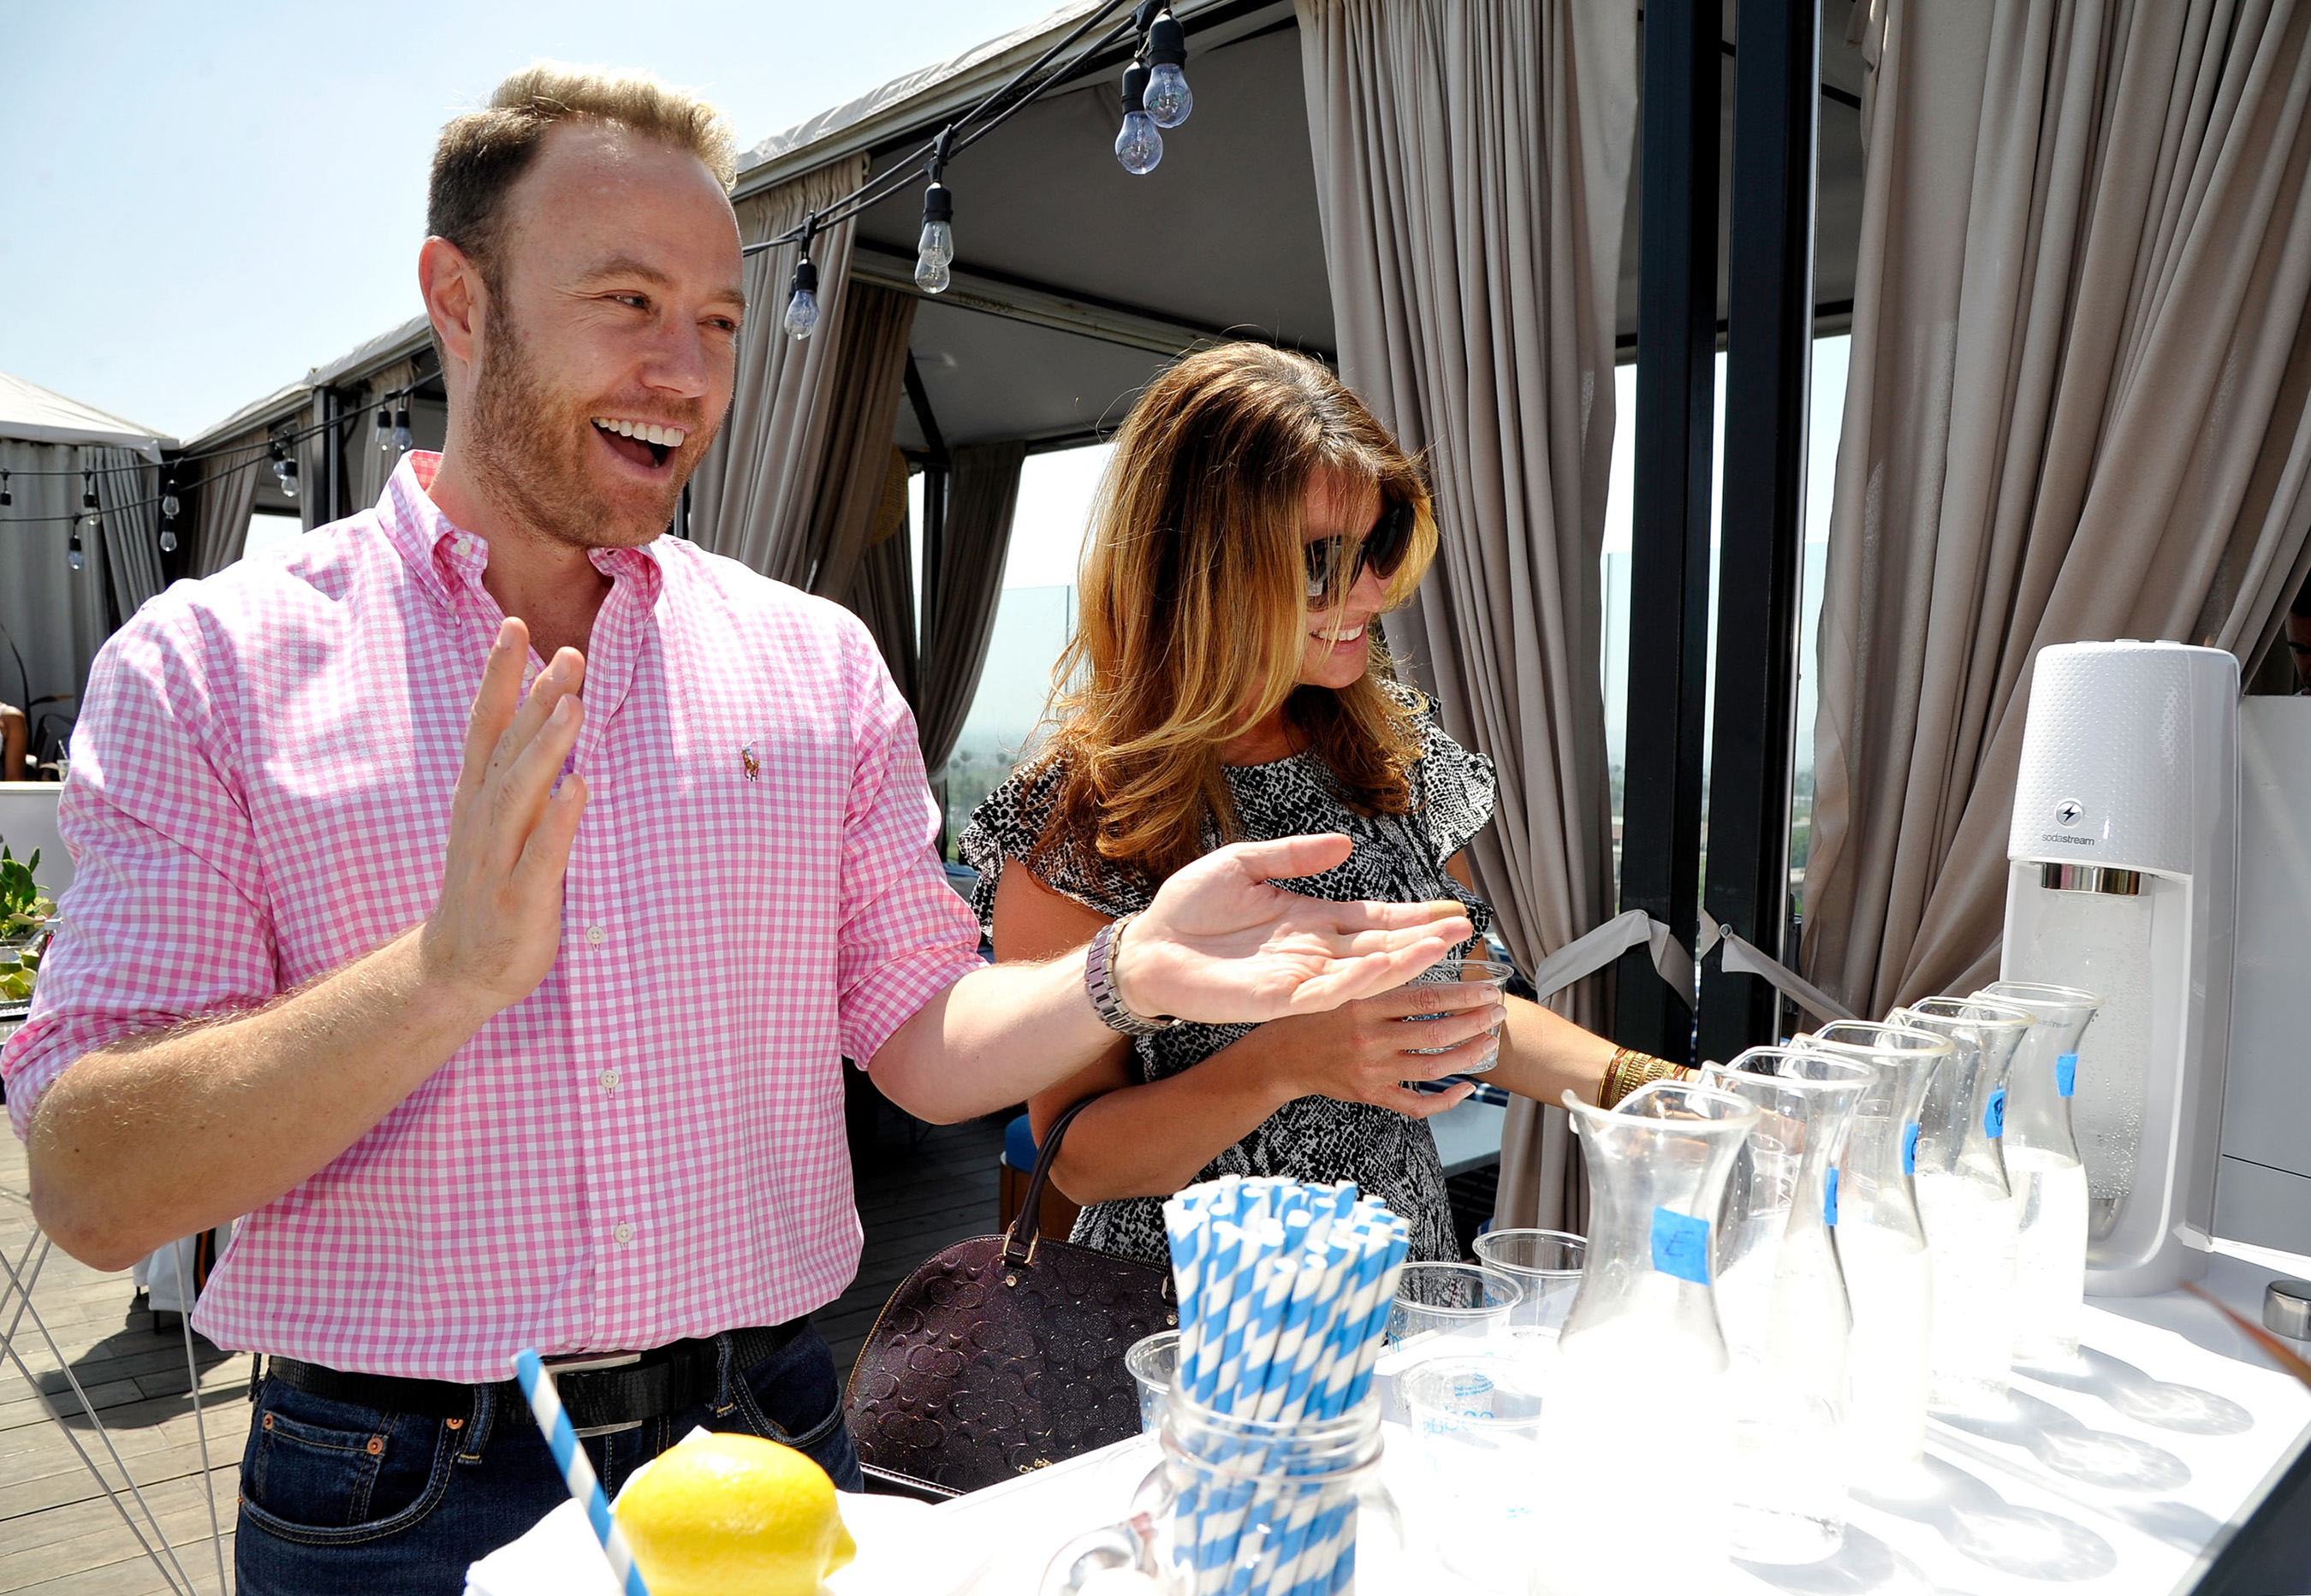 Paul Zahn and Silamith Maclean take a sparkling water blind taste test at SodaStream's National Hydration Day party on June 20, 2018.